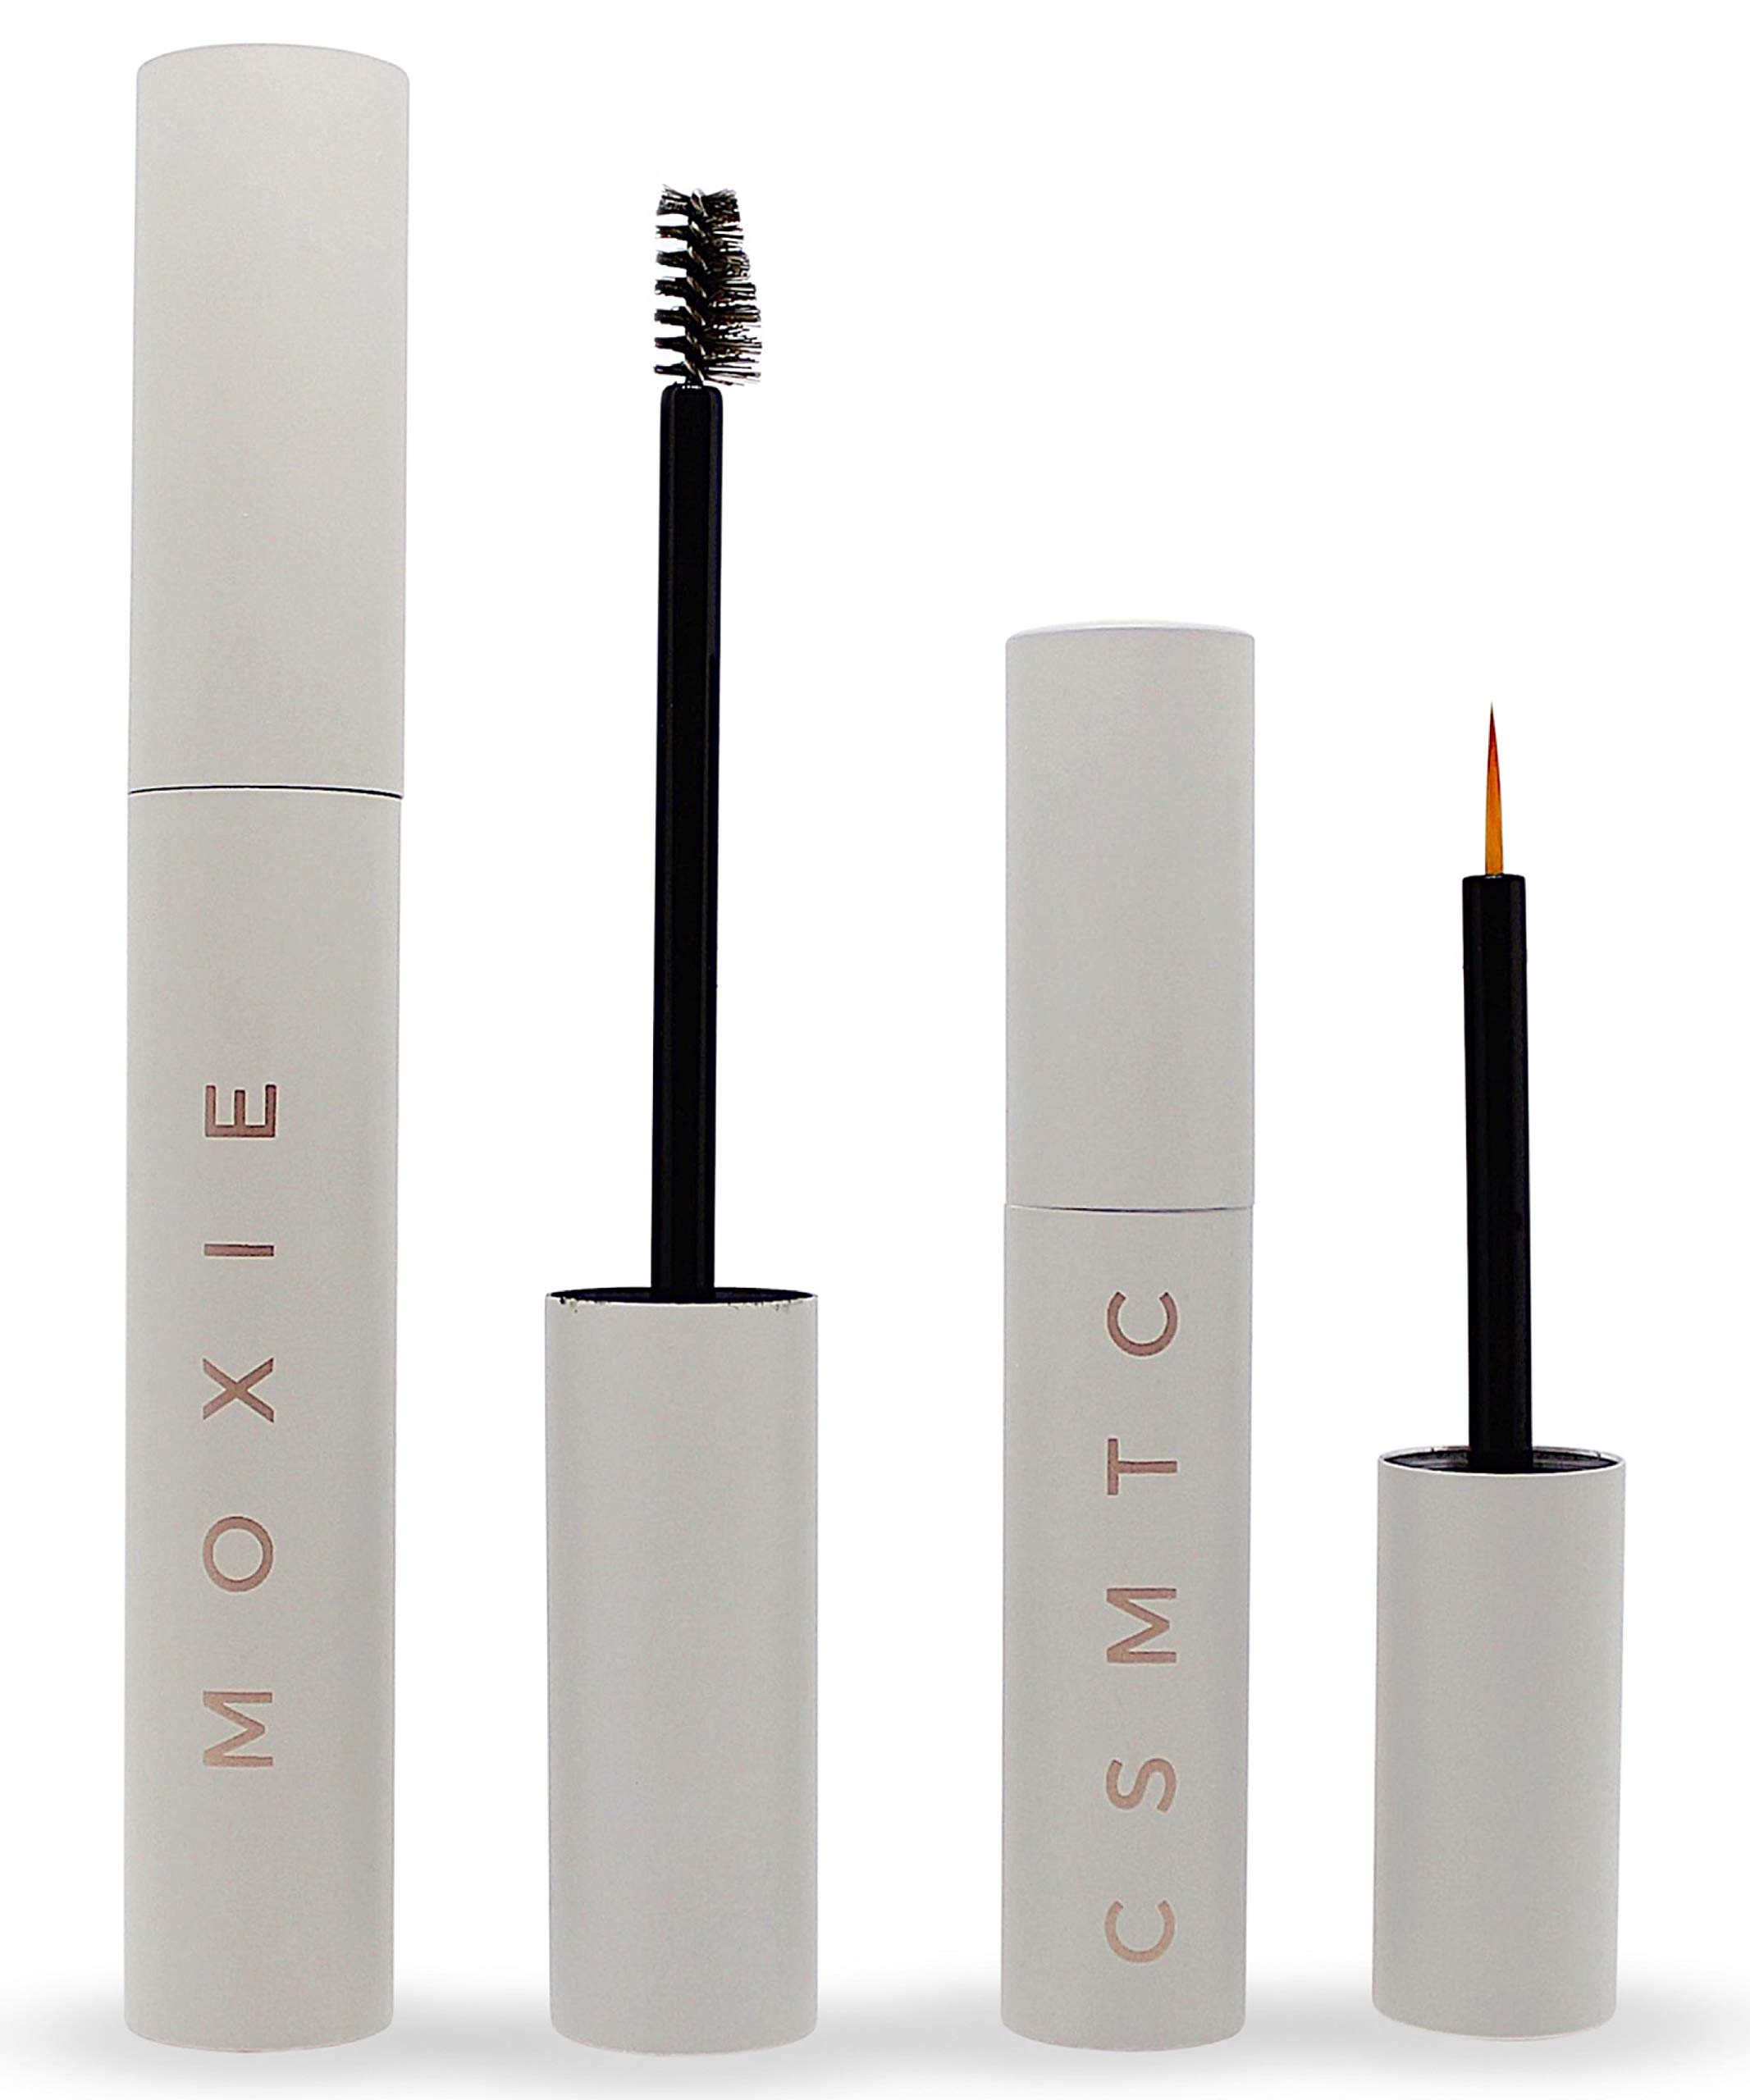 Eyelash Growth Serum and Eyebrow Enhancer   2 BOTTLES   Boost Natural Lash and Brow Hair Growth   Grow Longer, Thicker, Fuller, Luscious Eyelashes and Eyebrows with MOXIE Cosmetics Serums